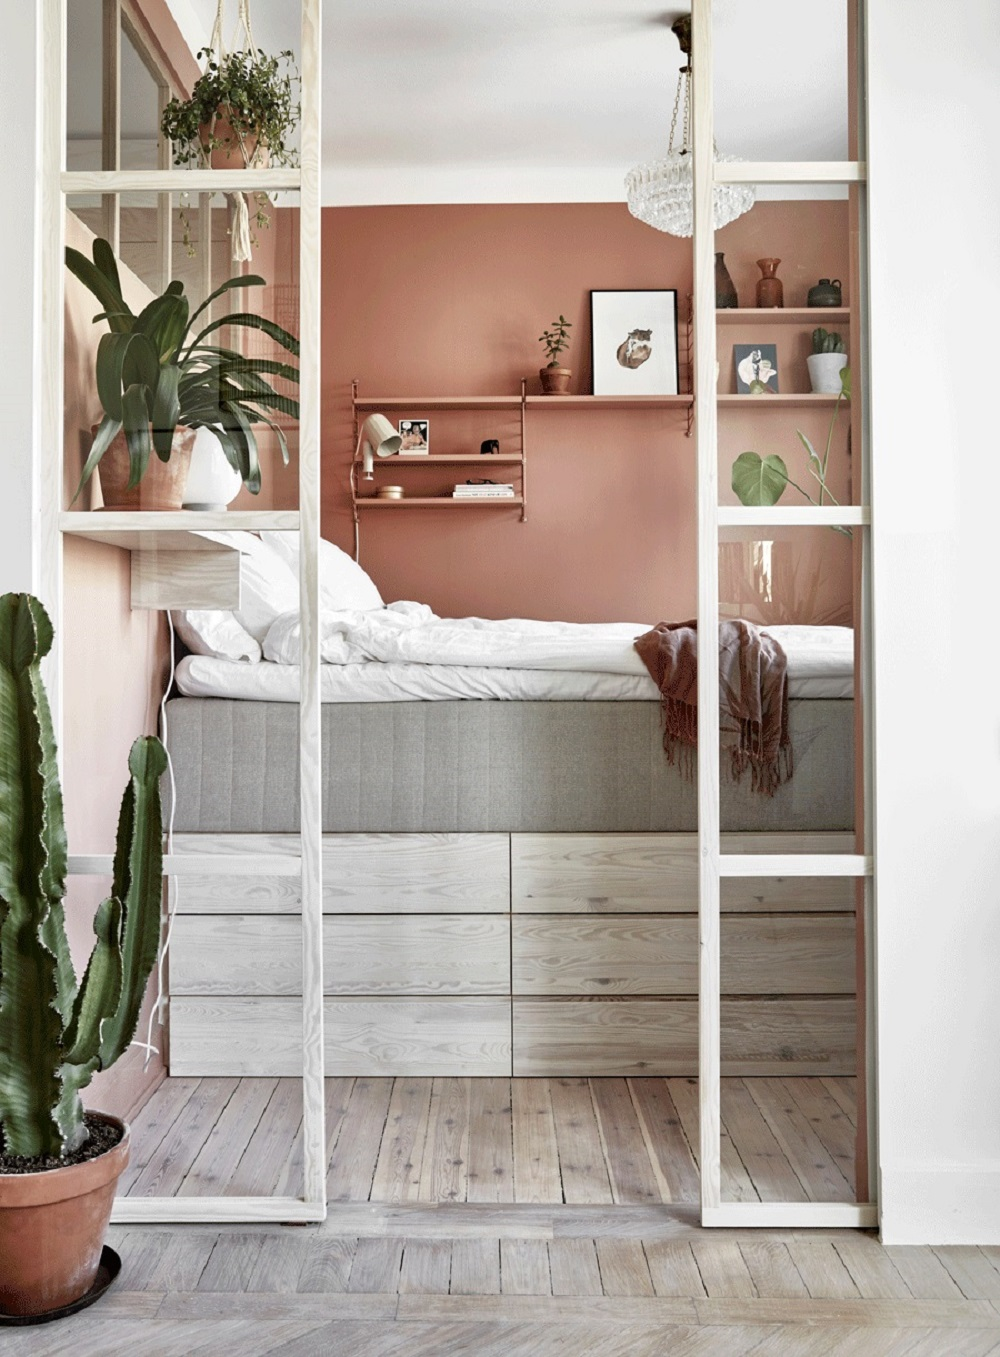 Small bedroom in a pink apartment   photo by Jonas Gustavsson